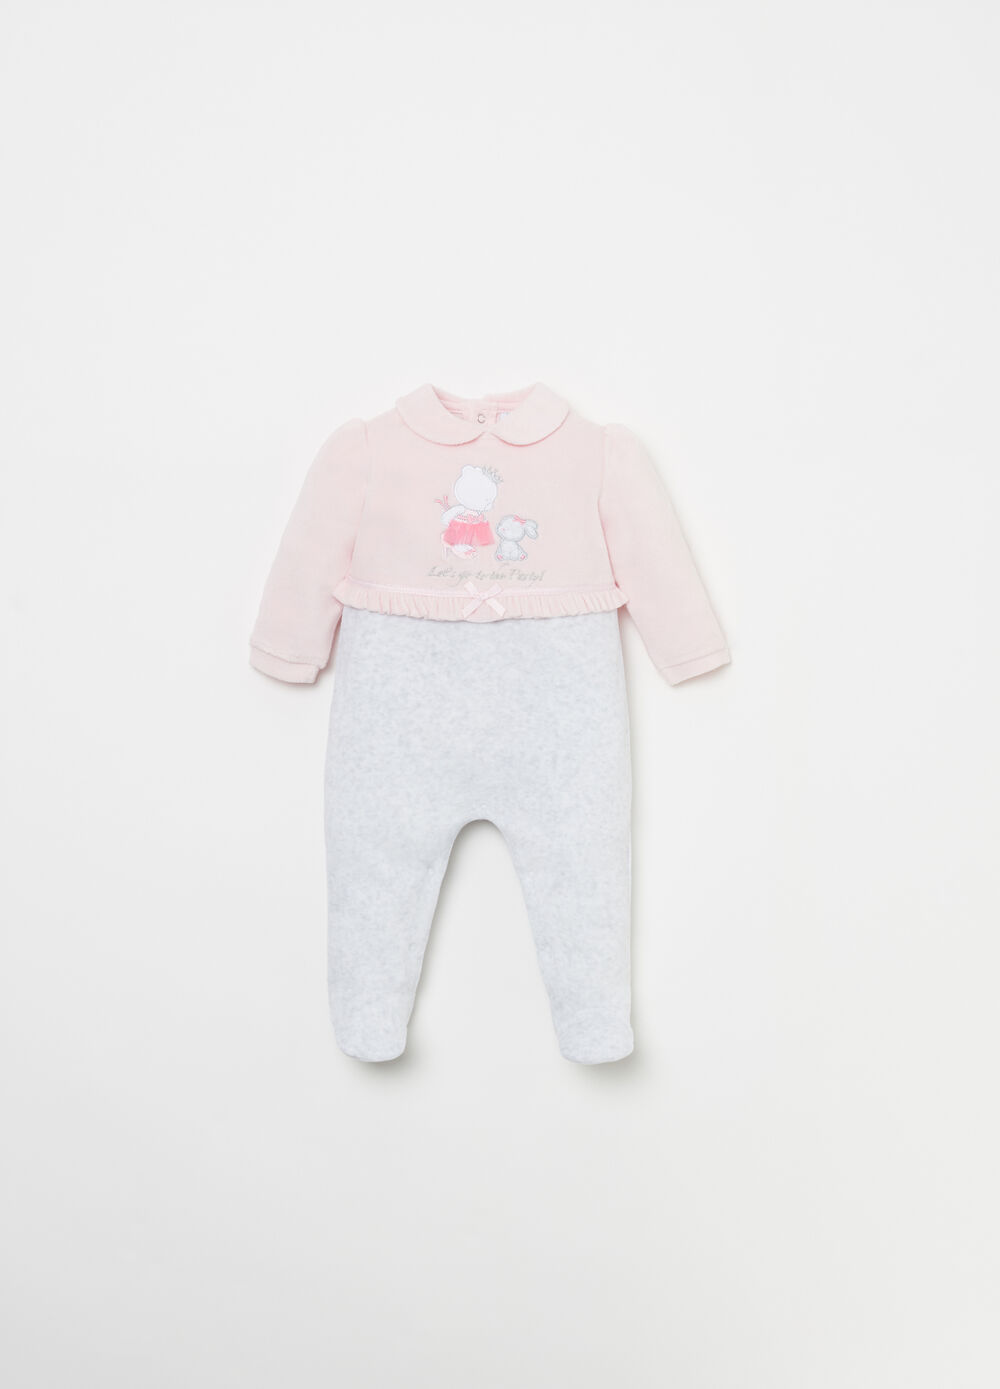 Onesie with animal patch and bows